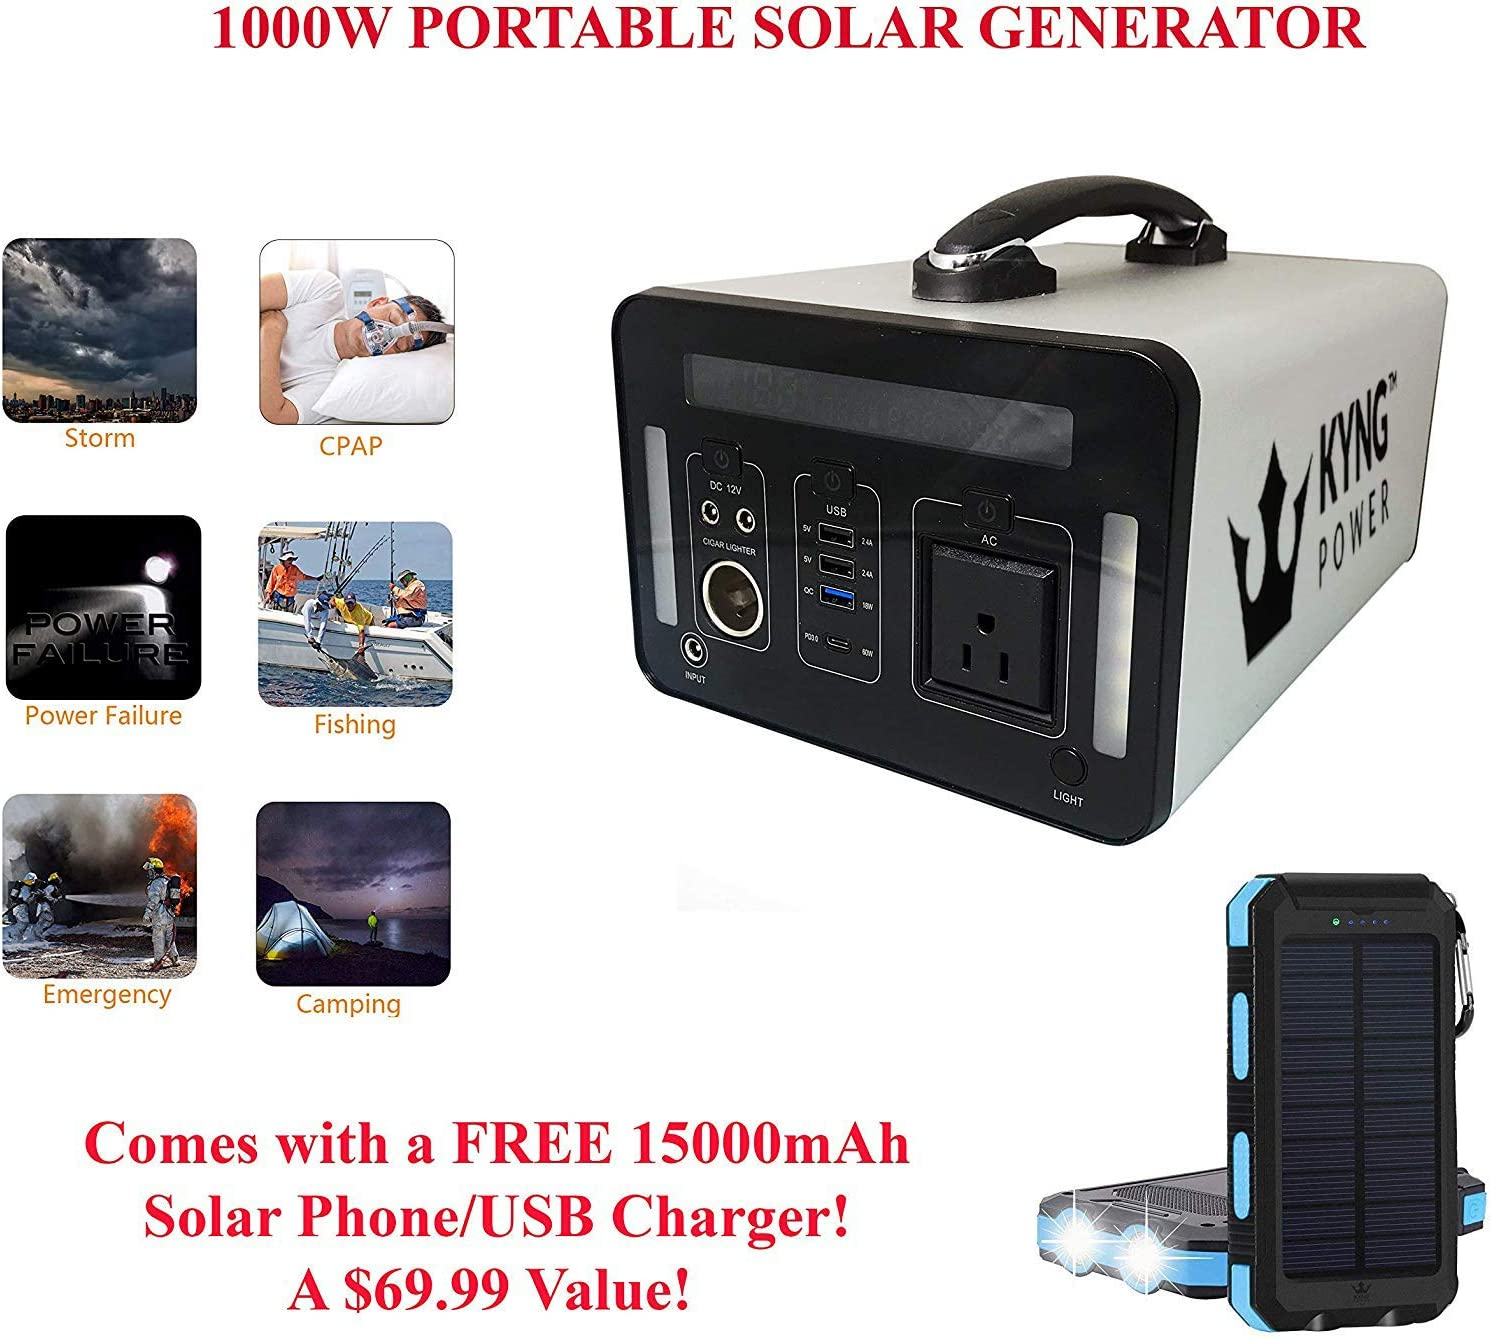 Kyng Power Solar Generator Portable Power Station 1000Wh 1500w Peak Emergency Generator Lithium Rechargeable Battery Inverter Back Up Power Supply, CPAP, Outdoors, Camping, Emergency 3 USB, 2 DC, AC